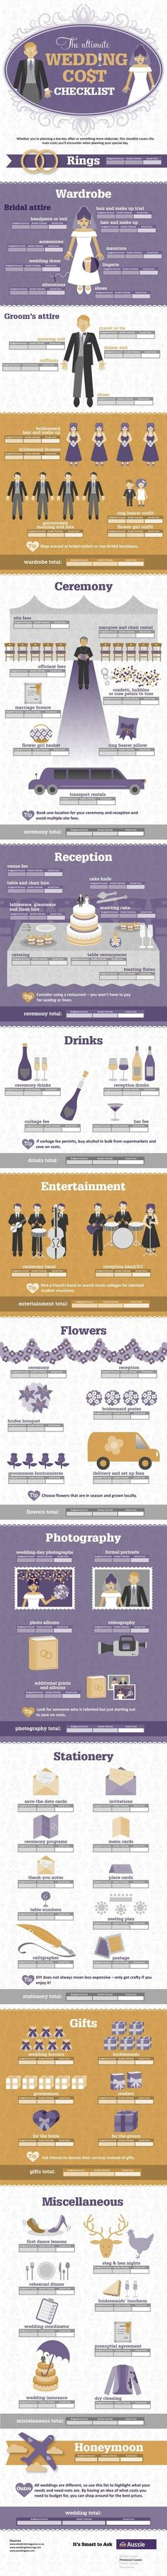 planning a wedding - the wedding cost checklist / http://www.deerpearlflowers.com/how-to-plan-a-wedding-101/